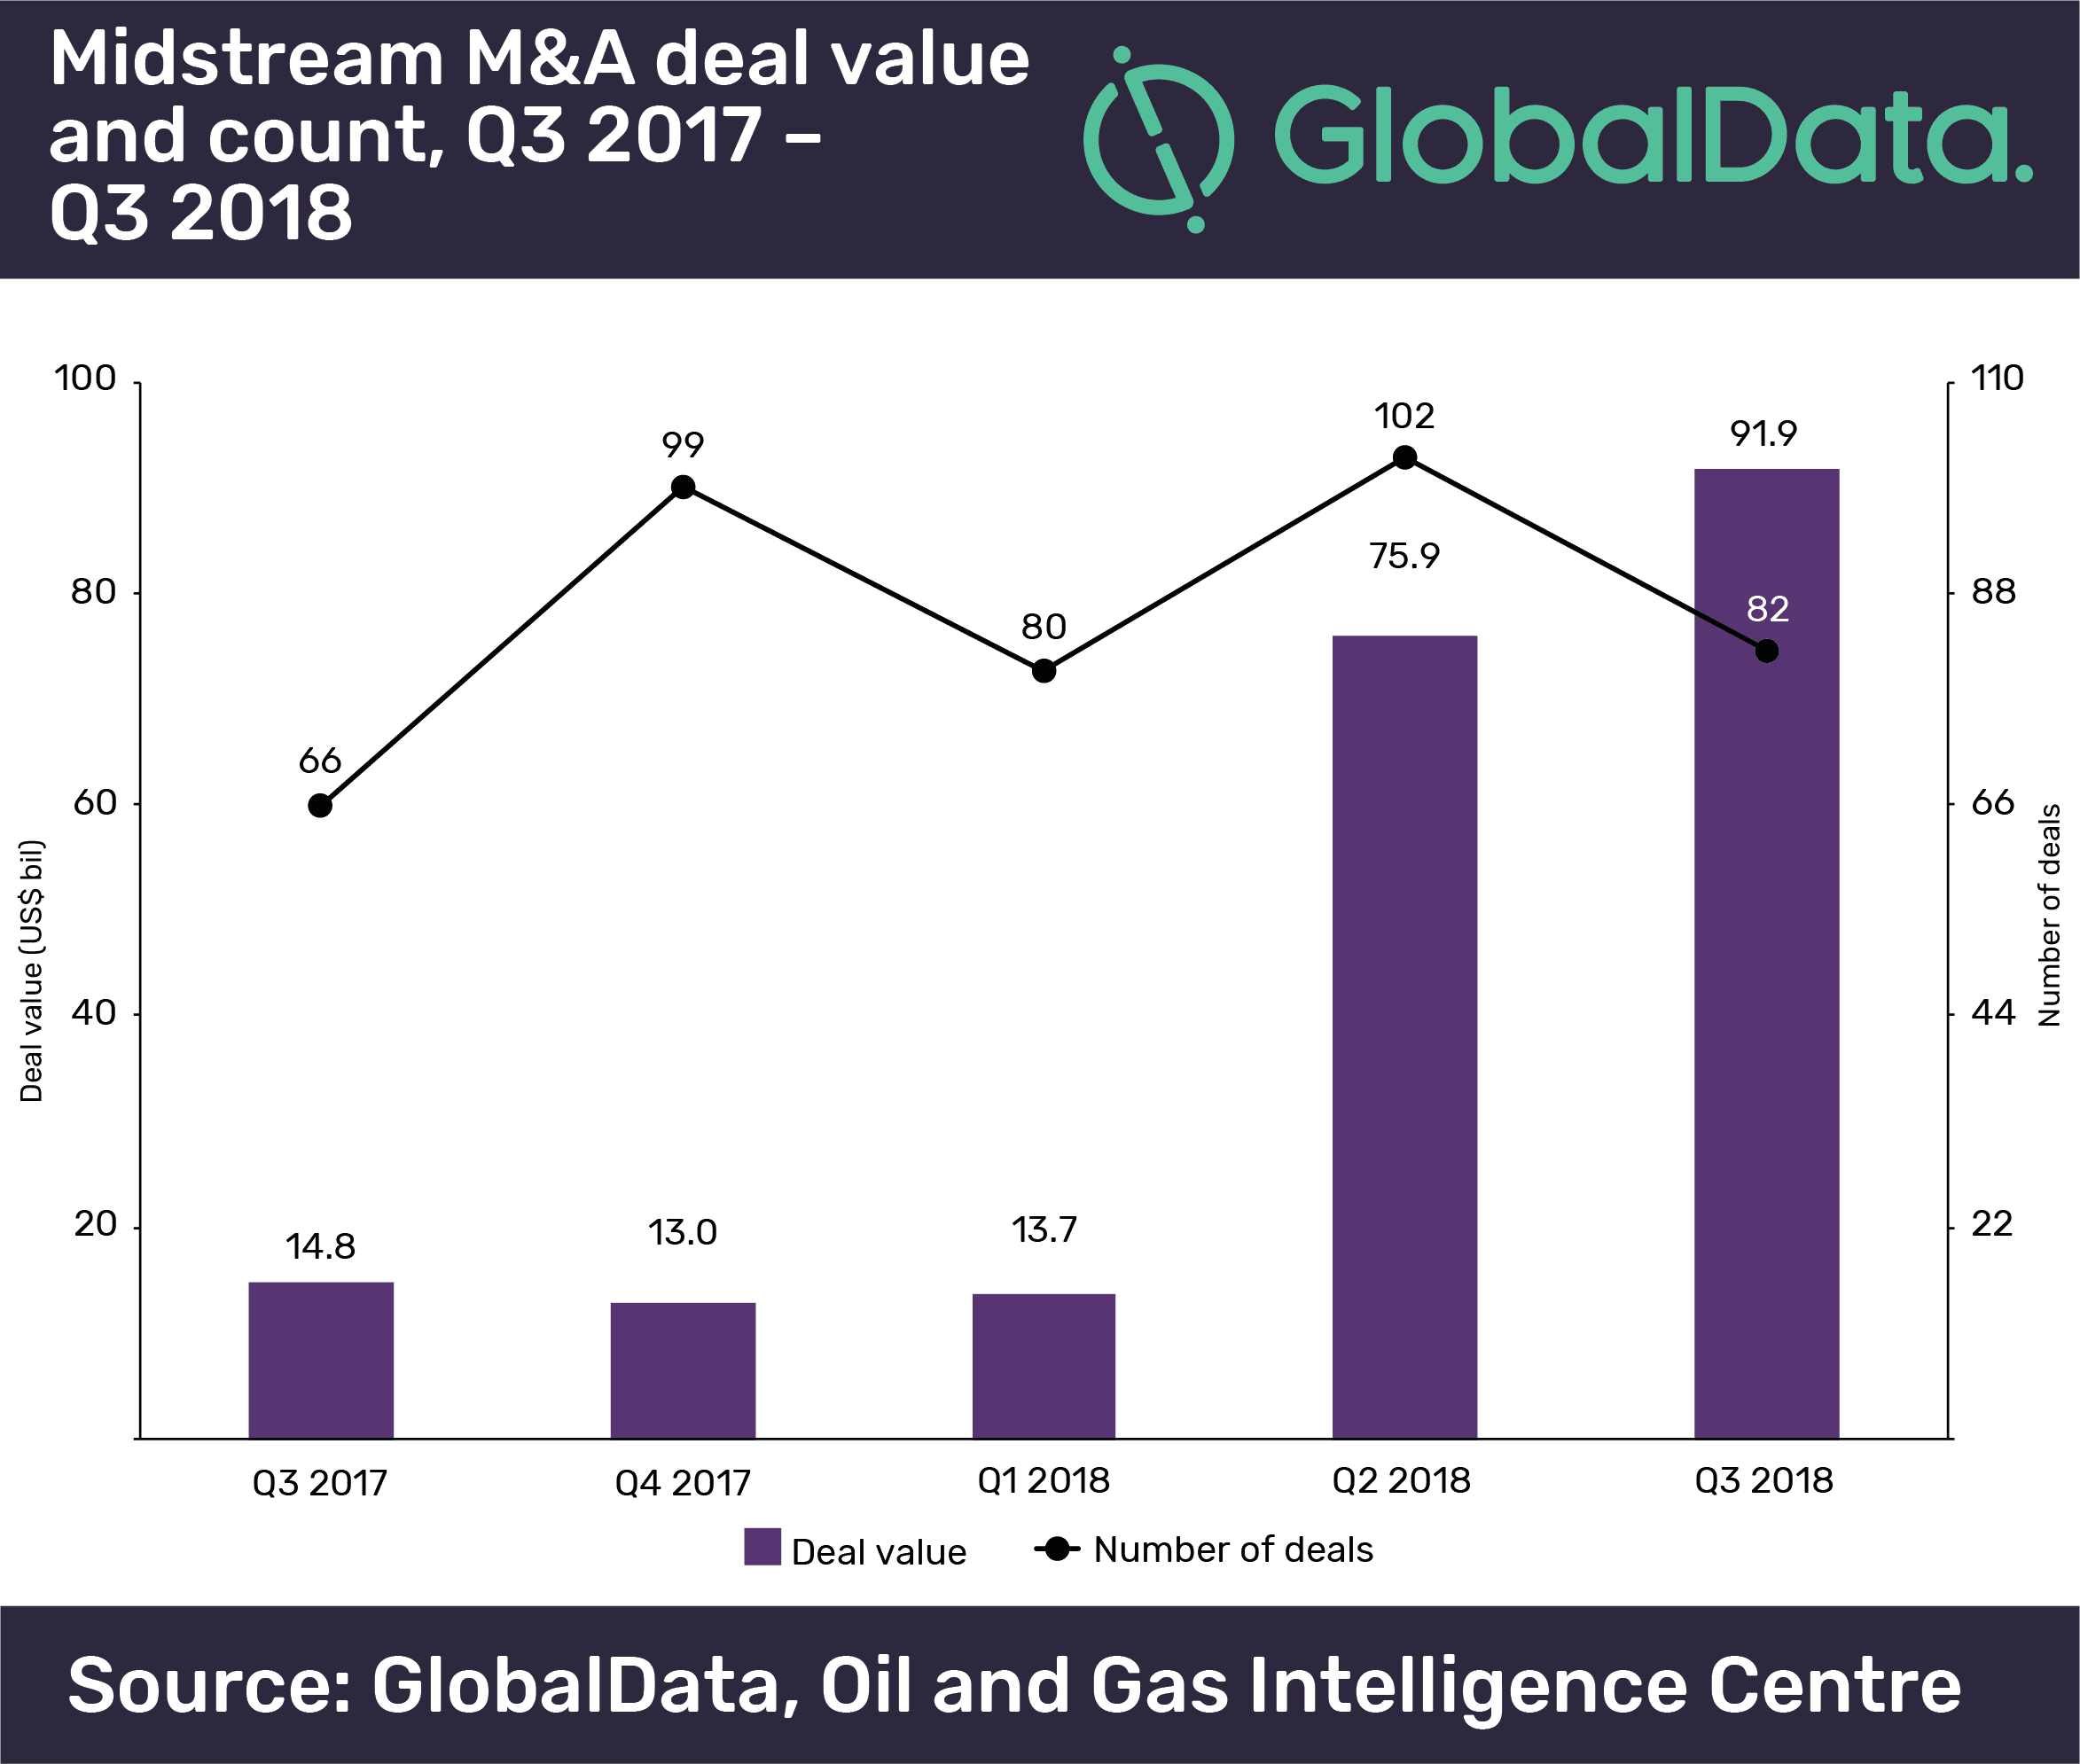 M&A Values Totaled $91.9 Billion in the Midstream Sector in Q3 2018